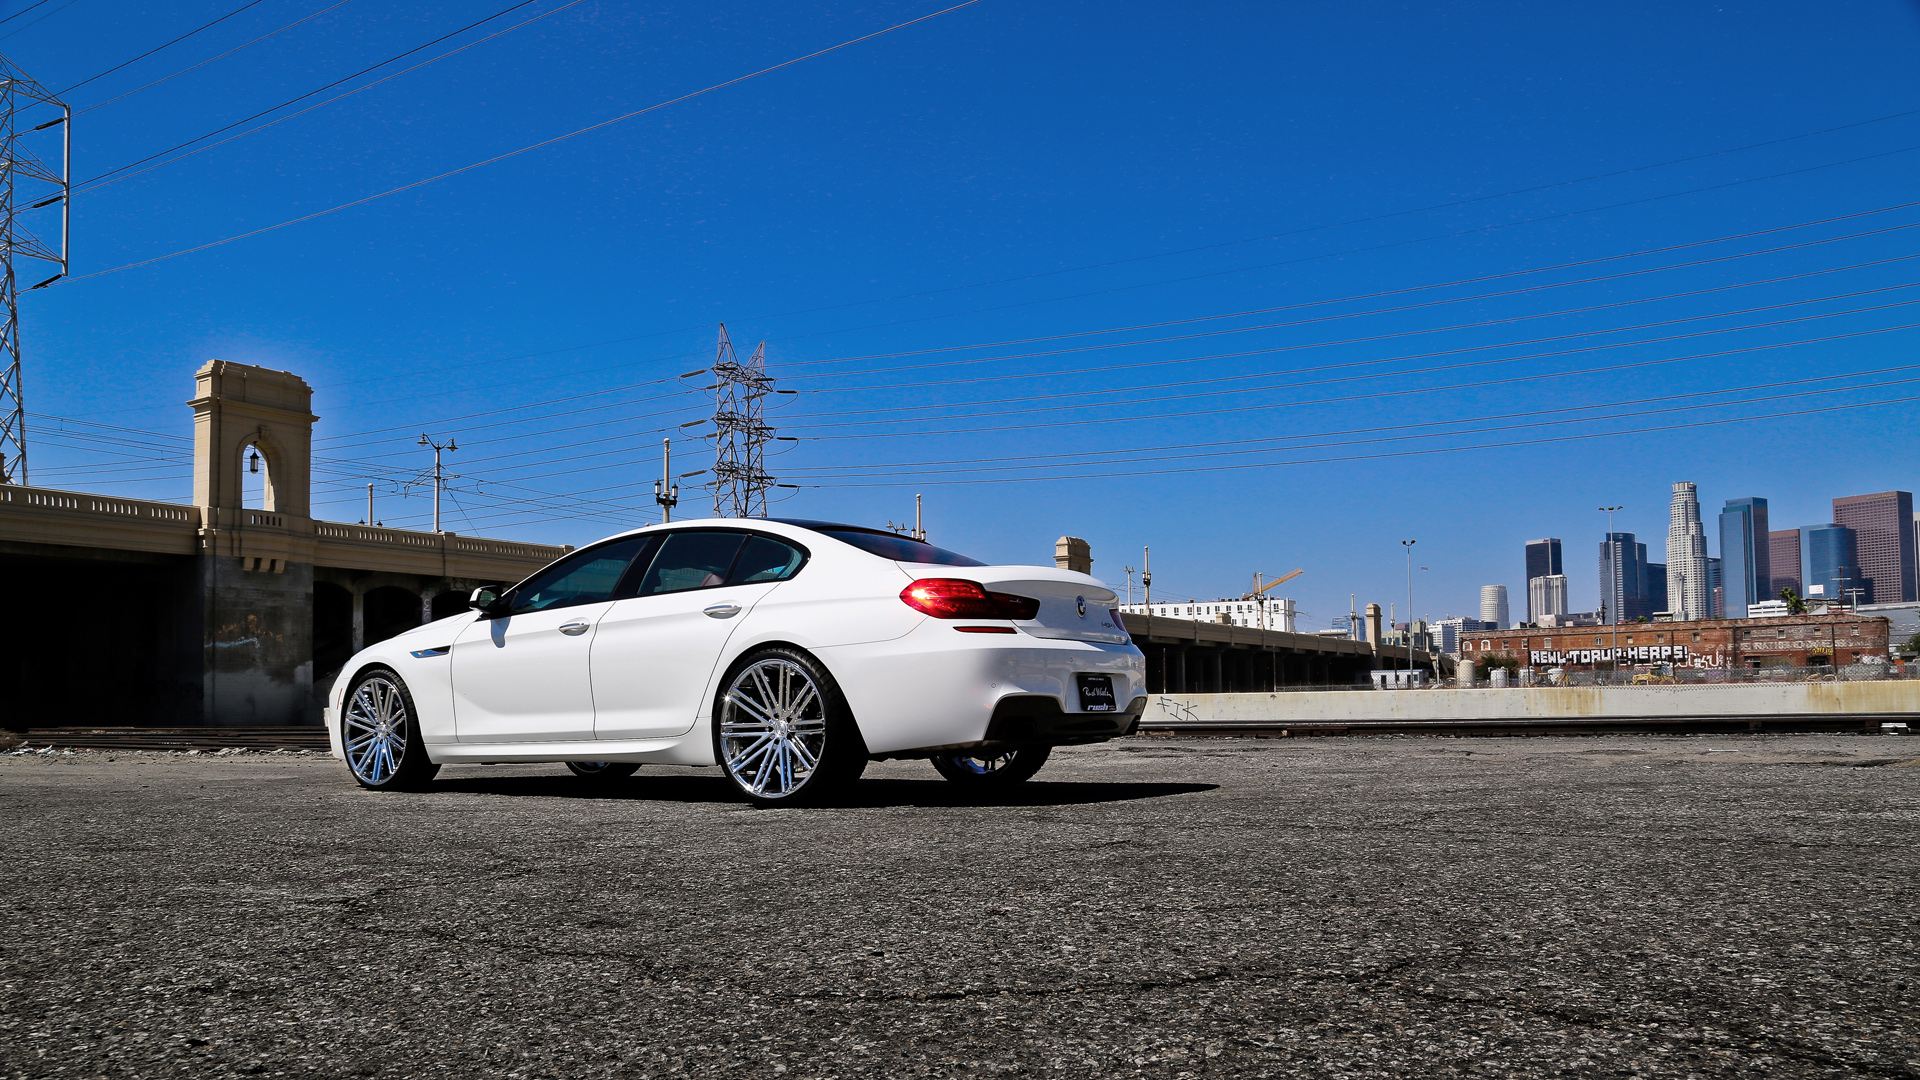 Bmw M6 Gran Coupe >> 2014 BMW 640i Gran Coupe – HH11 | Heavy Hitter Wheels